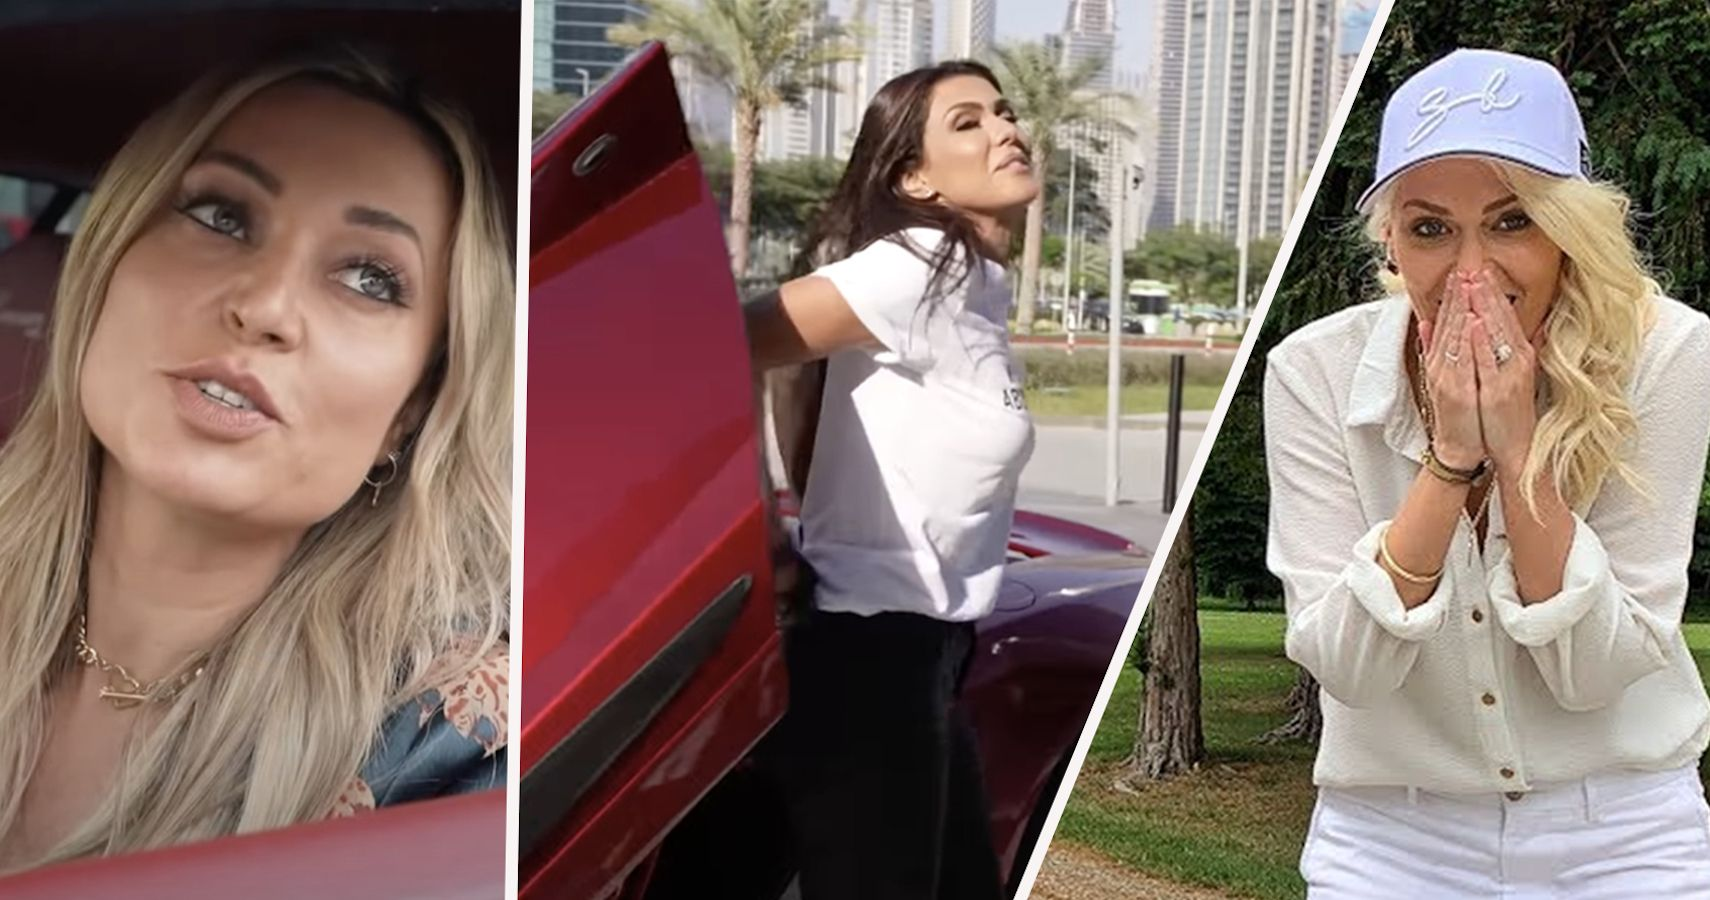 Women Supercar Owners Show Off Their Cars (And Abs) For Supercar Blondie